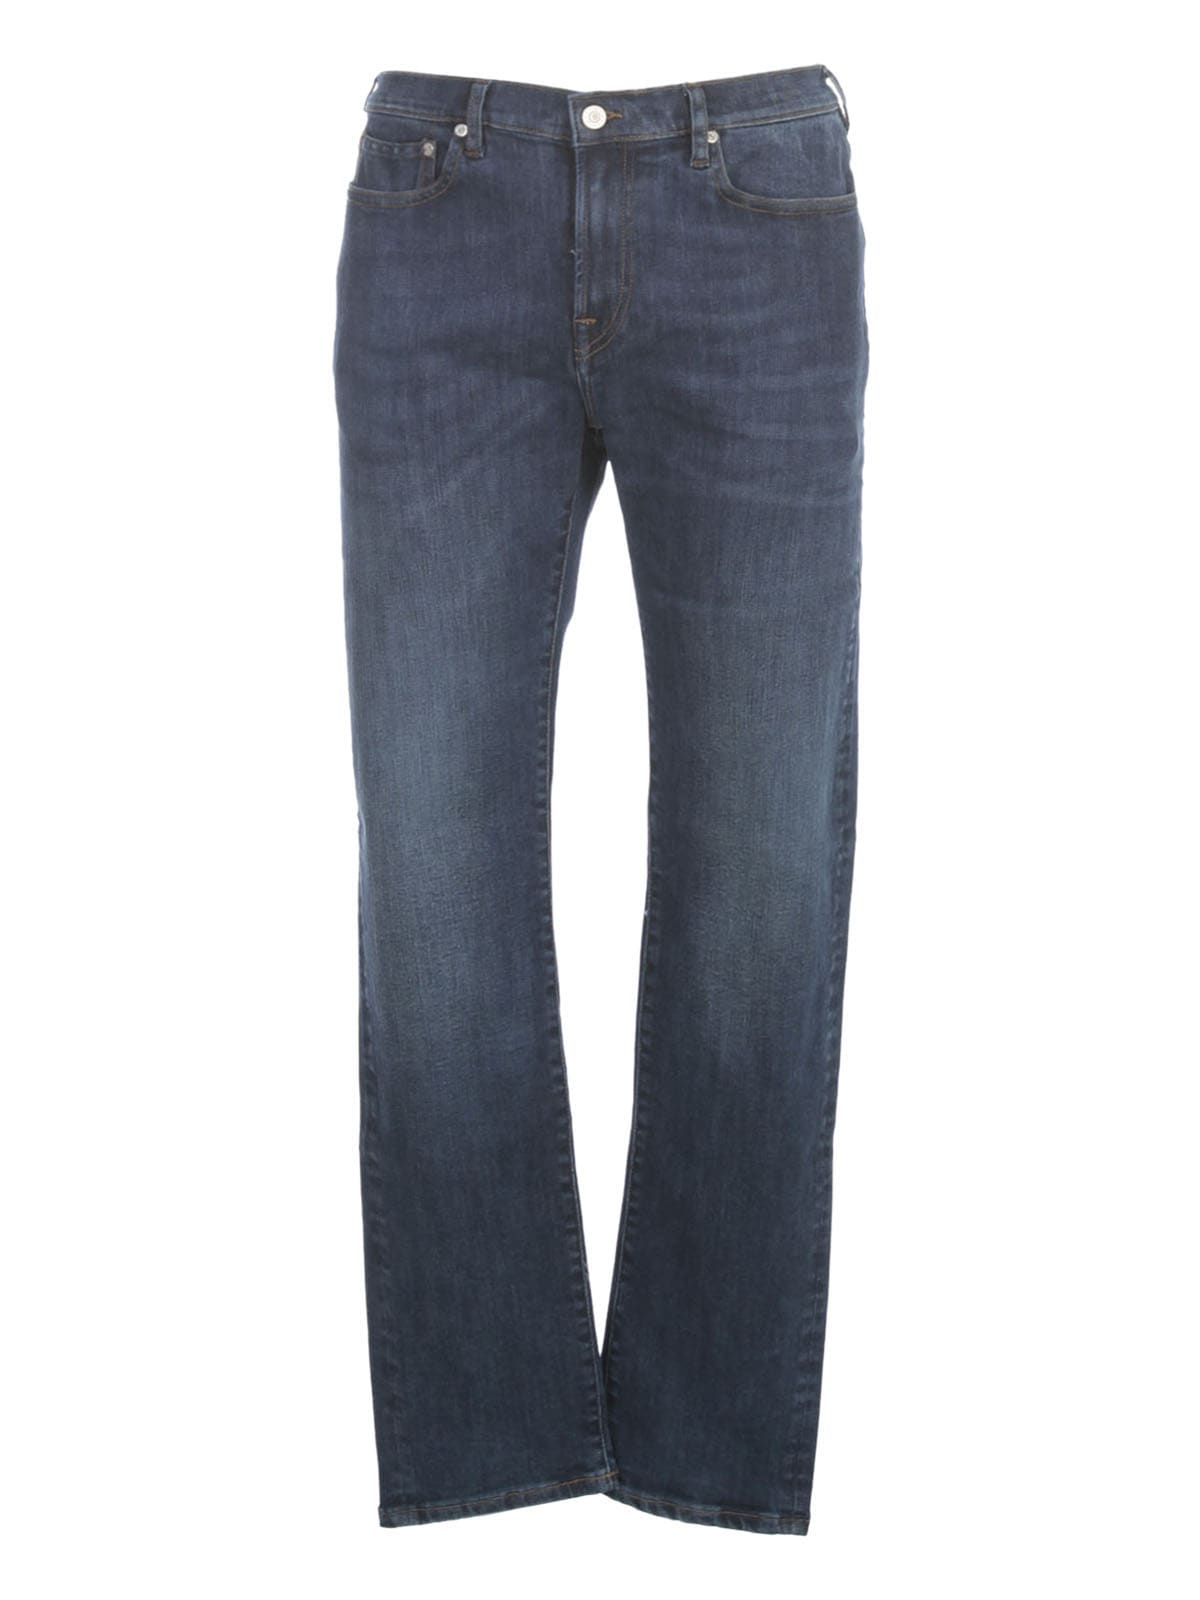 PS by Paul Smith Jeans Slim Fit